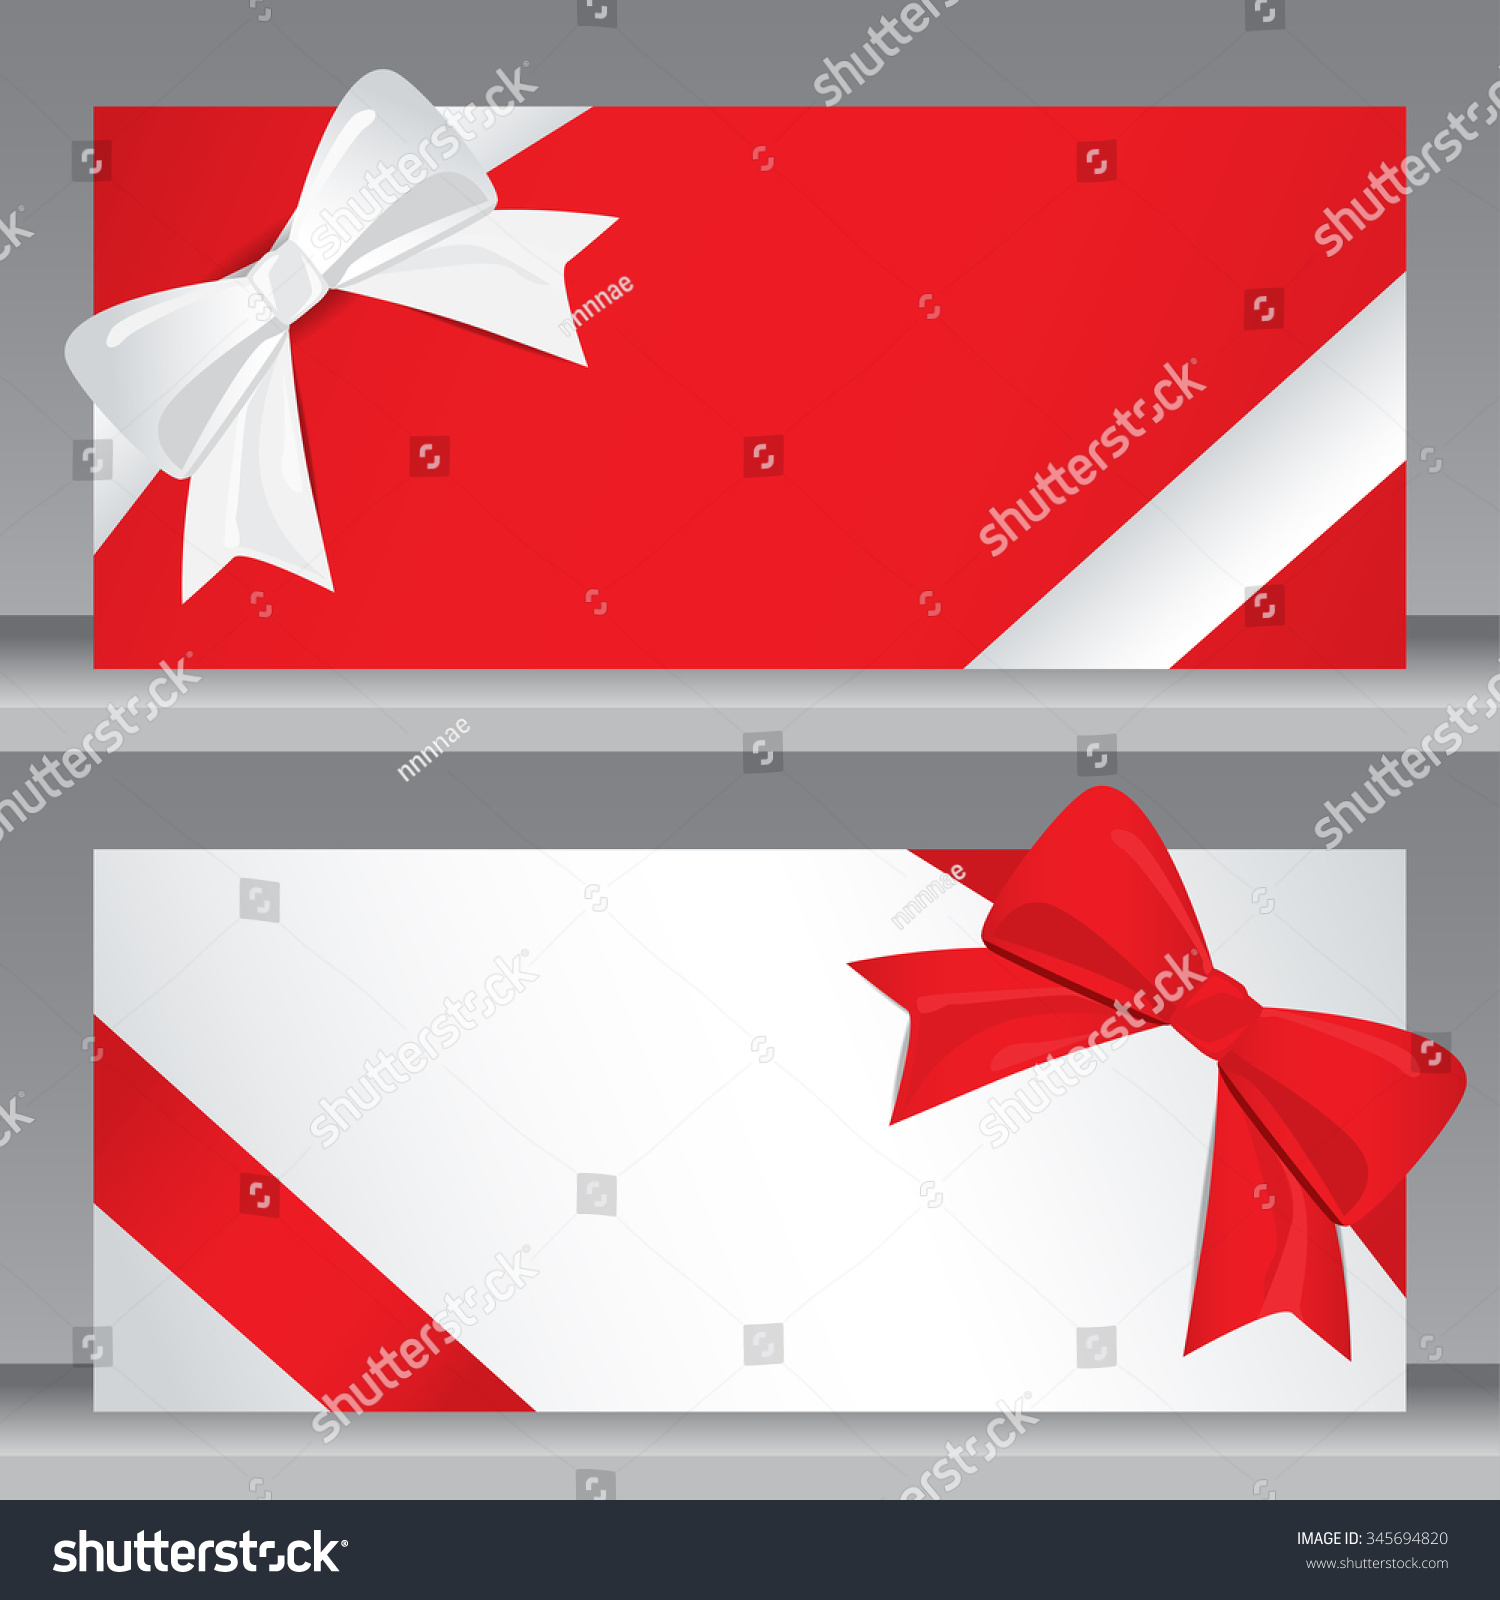 christmas holiday new year gift voucher stock vector 345694820 christmas holiday and new year gift voucher certificate coupon template can be use for business